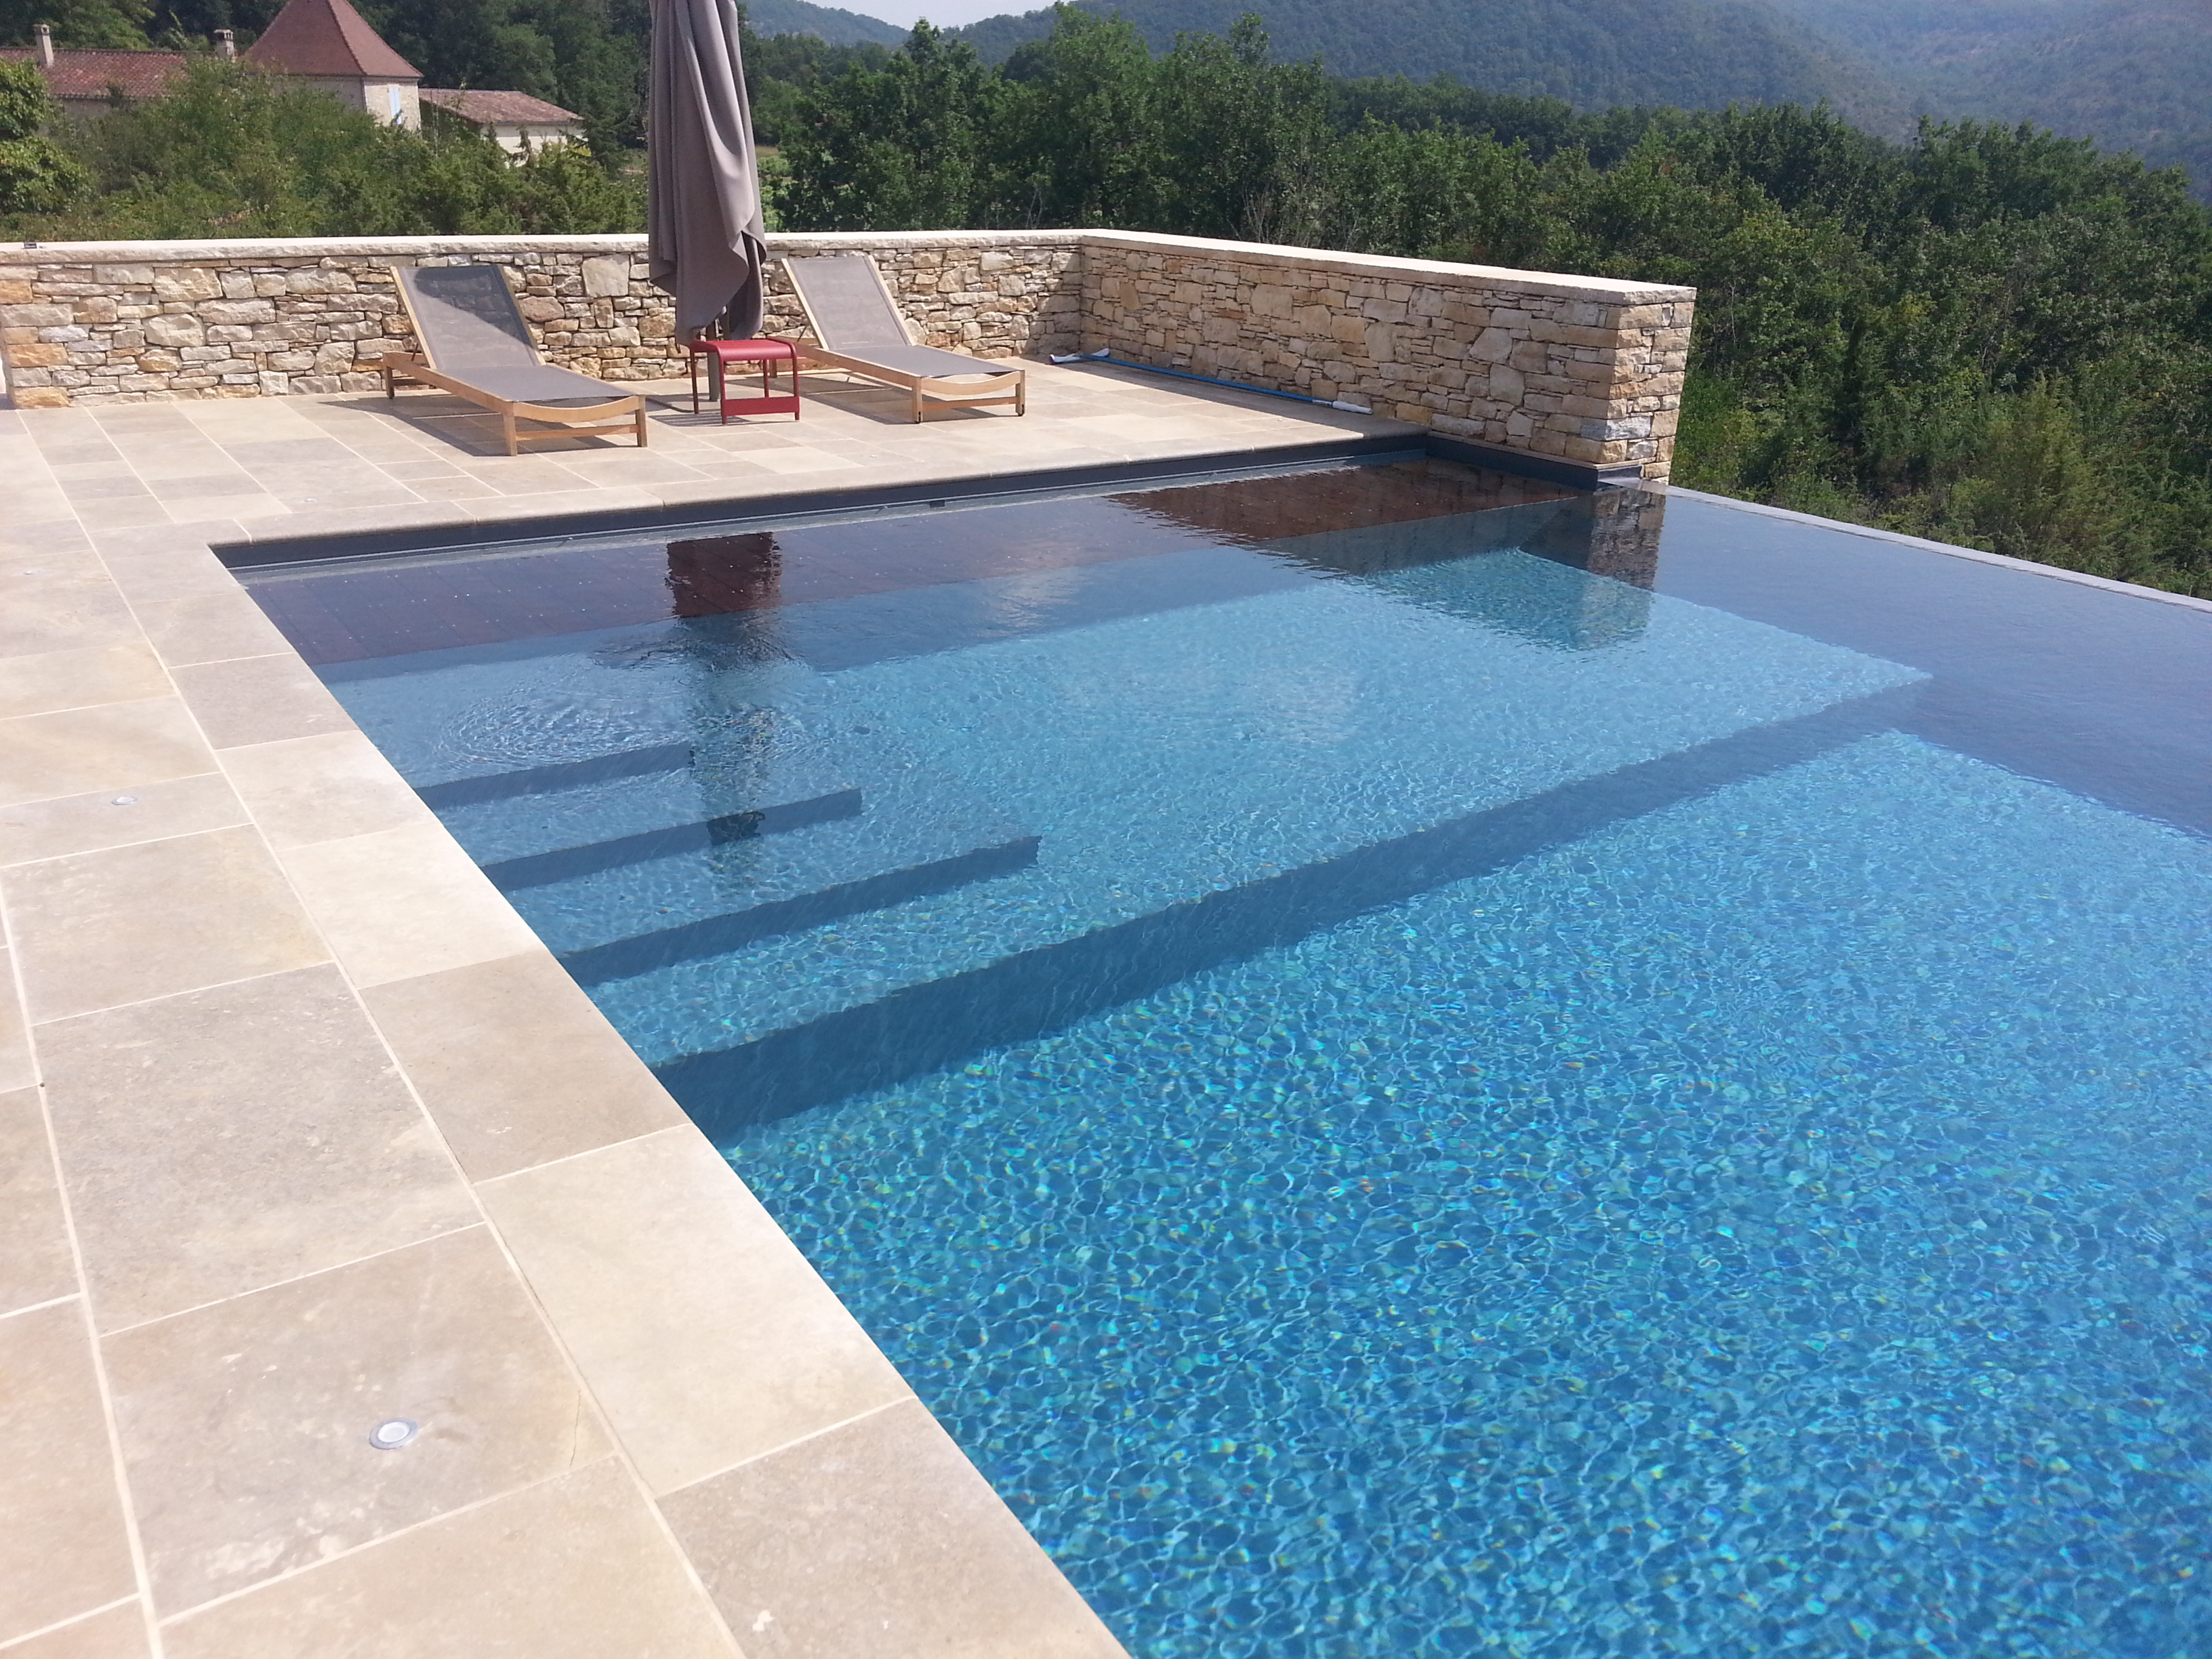 Piscine everblue everblue l inspiration la petite for Construction piscine haute garonne